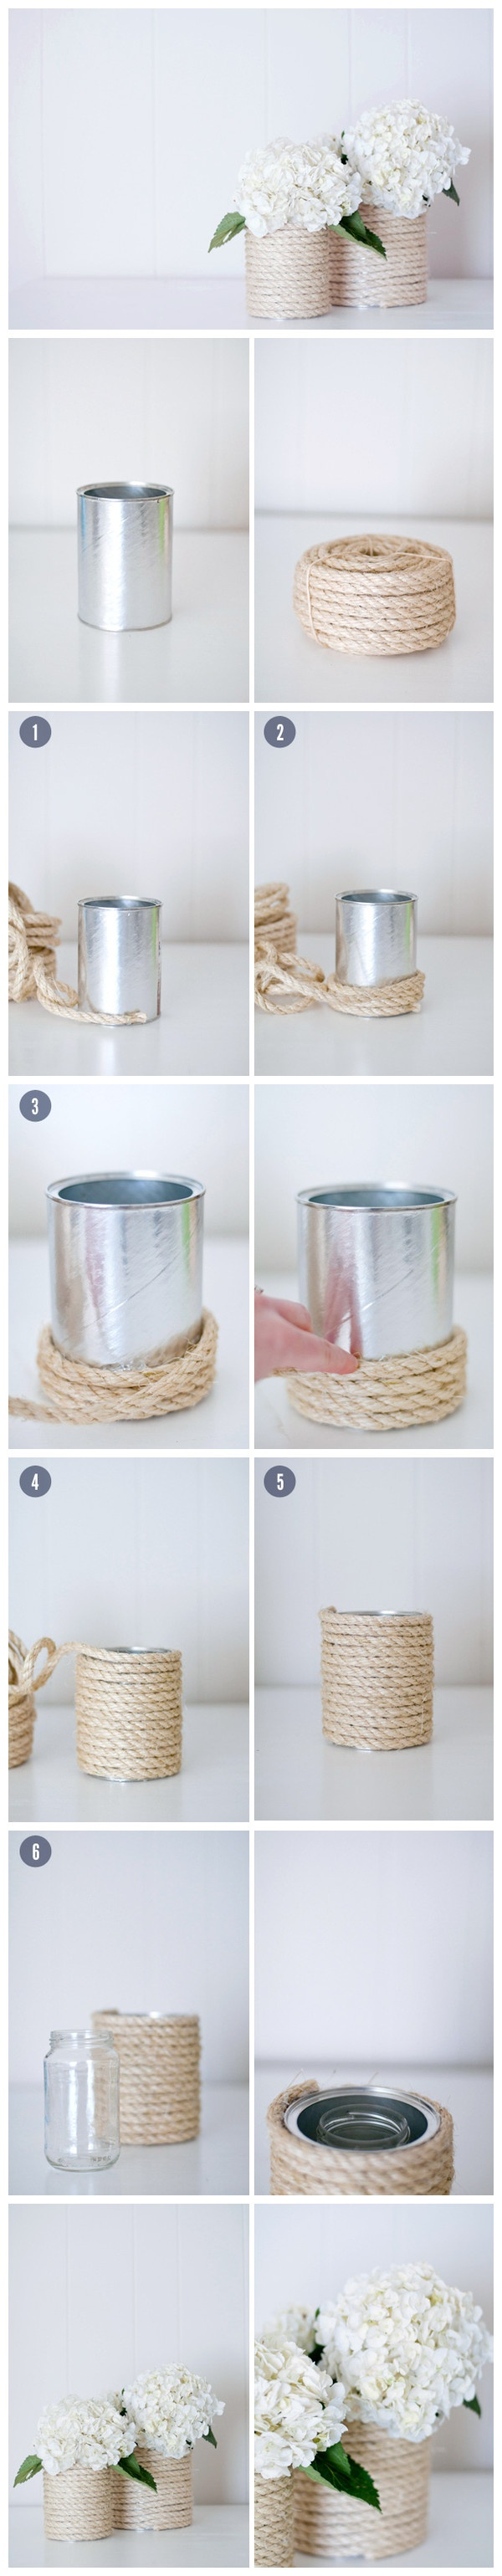 【Wedding DIY】Twine Bottles